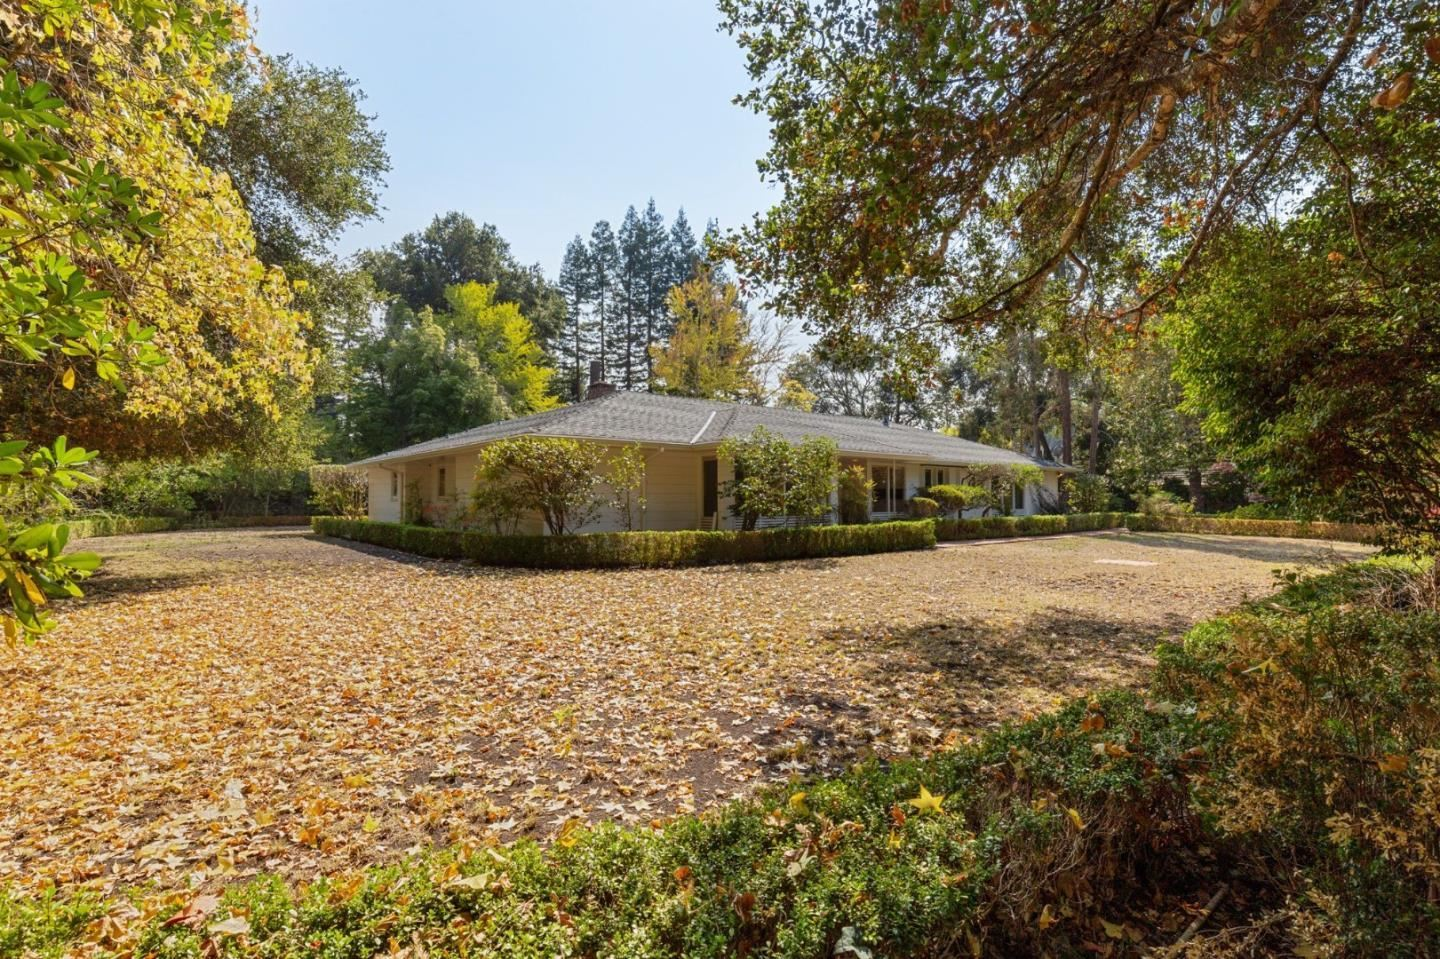 Photo for 143 Selby LN, ATHERTON, CA 94027 (MLS # ML81830941)